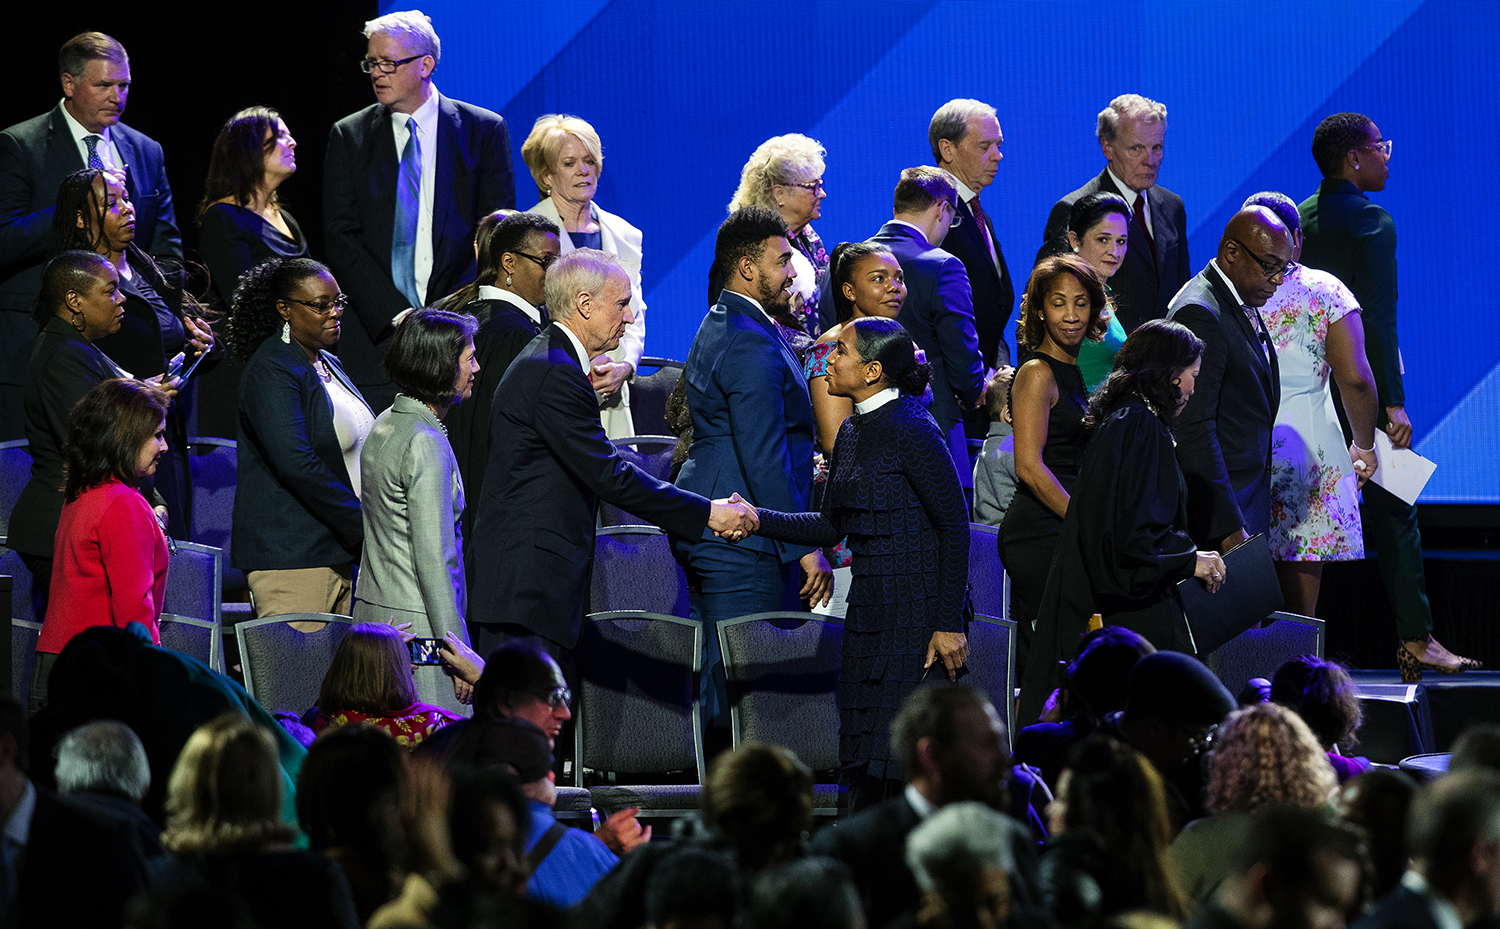 Lt. Gov. Juliana Stratton greets former Illinois Governor Bruce Rauner at the conclusion of the Illinois Inaugural Ceremony at the Bank of Springfield Center Monday, Jan. 14, 2019. [Ted Schurter/The State Journal-Register]